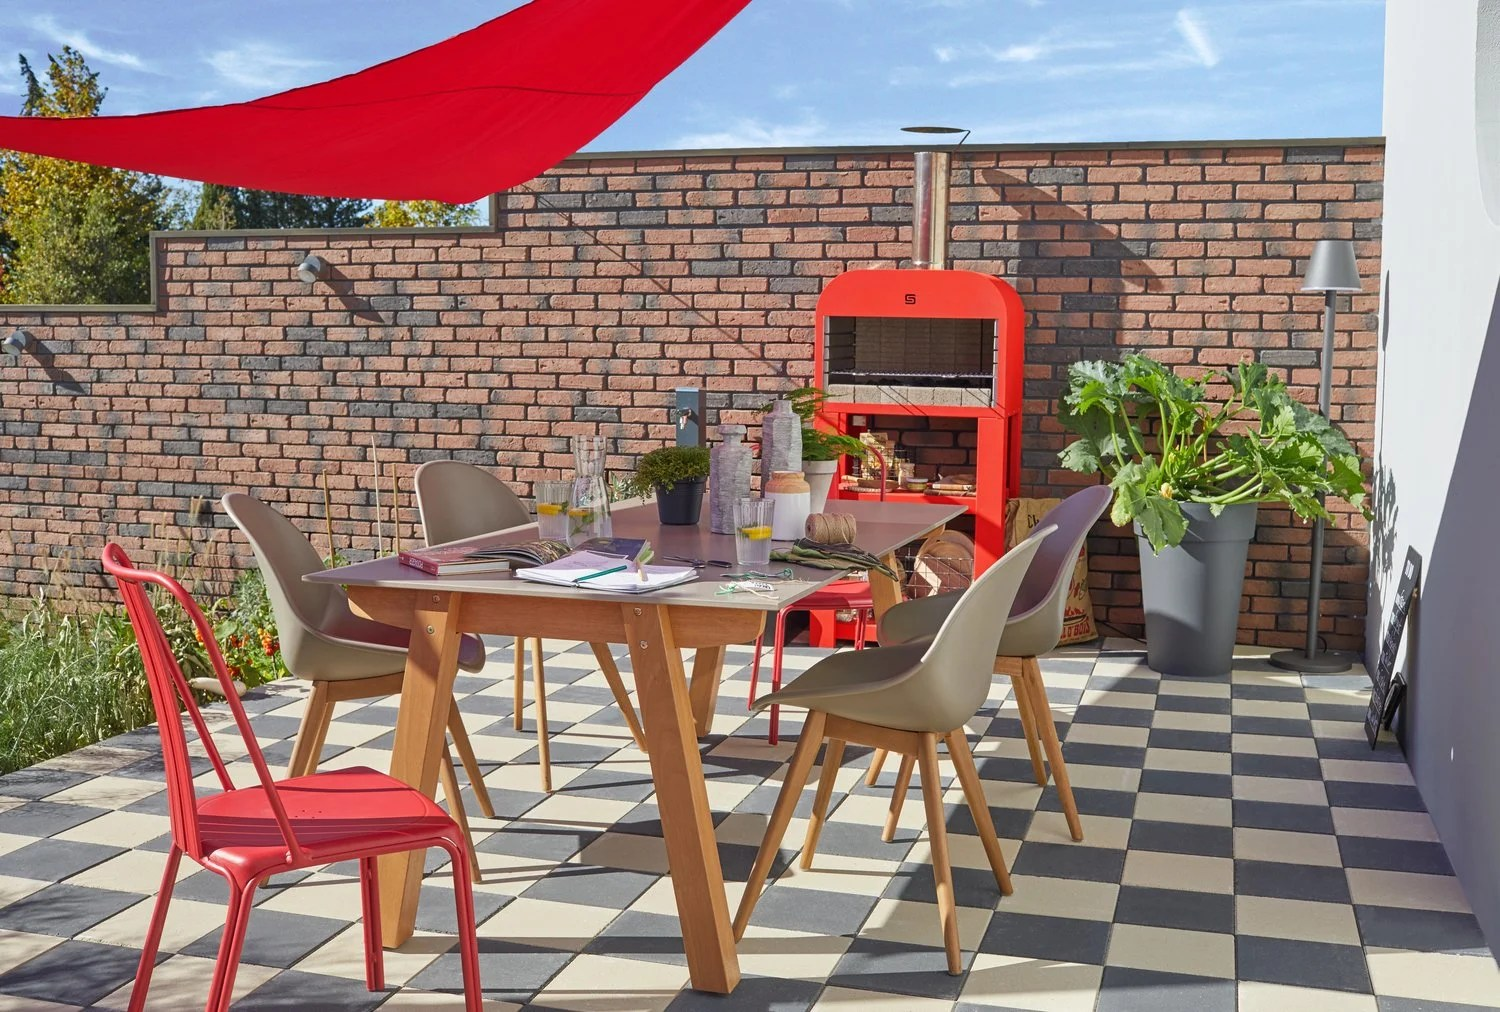 Mobilier Exterieur Gris La Nouvelle Collection De Salon De Jardin 2019 Leroy Merlin